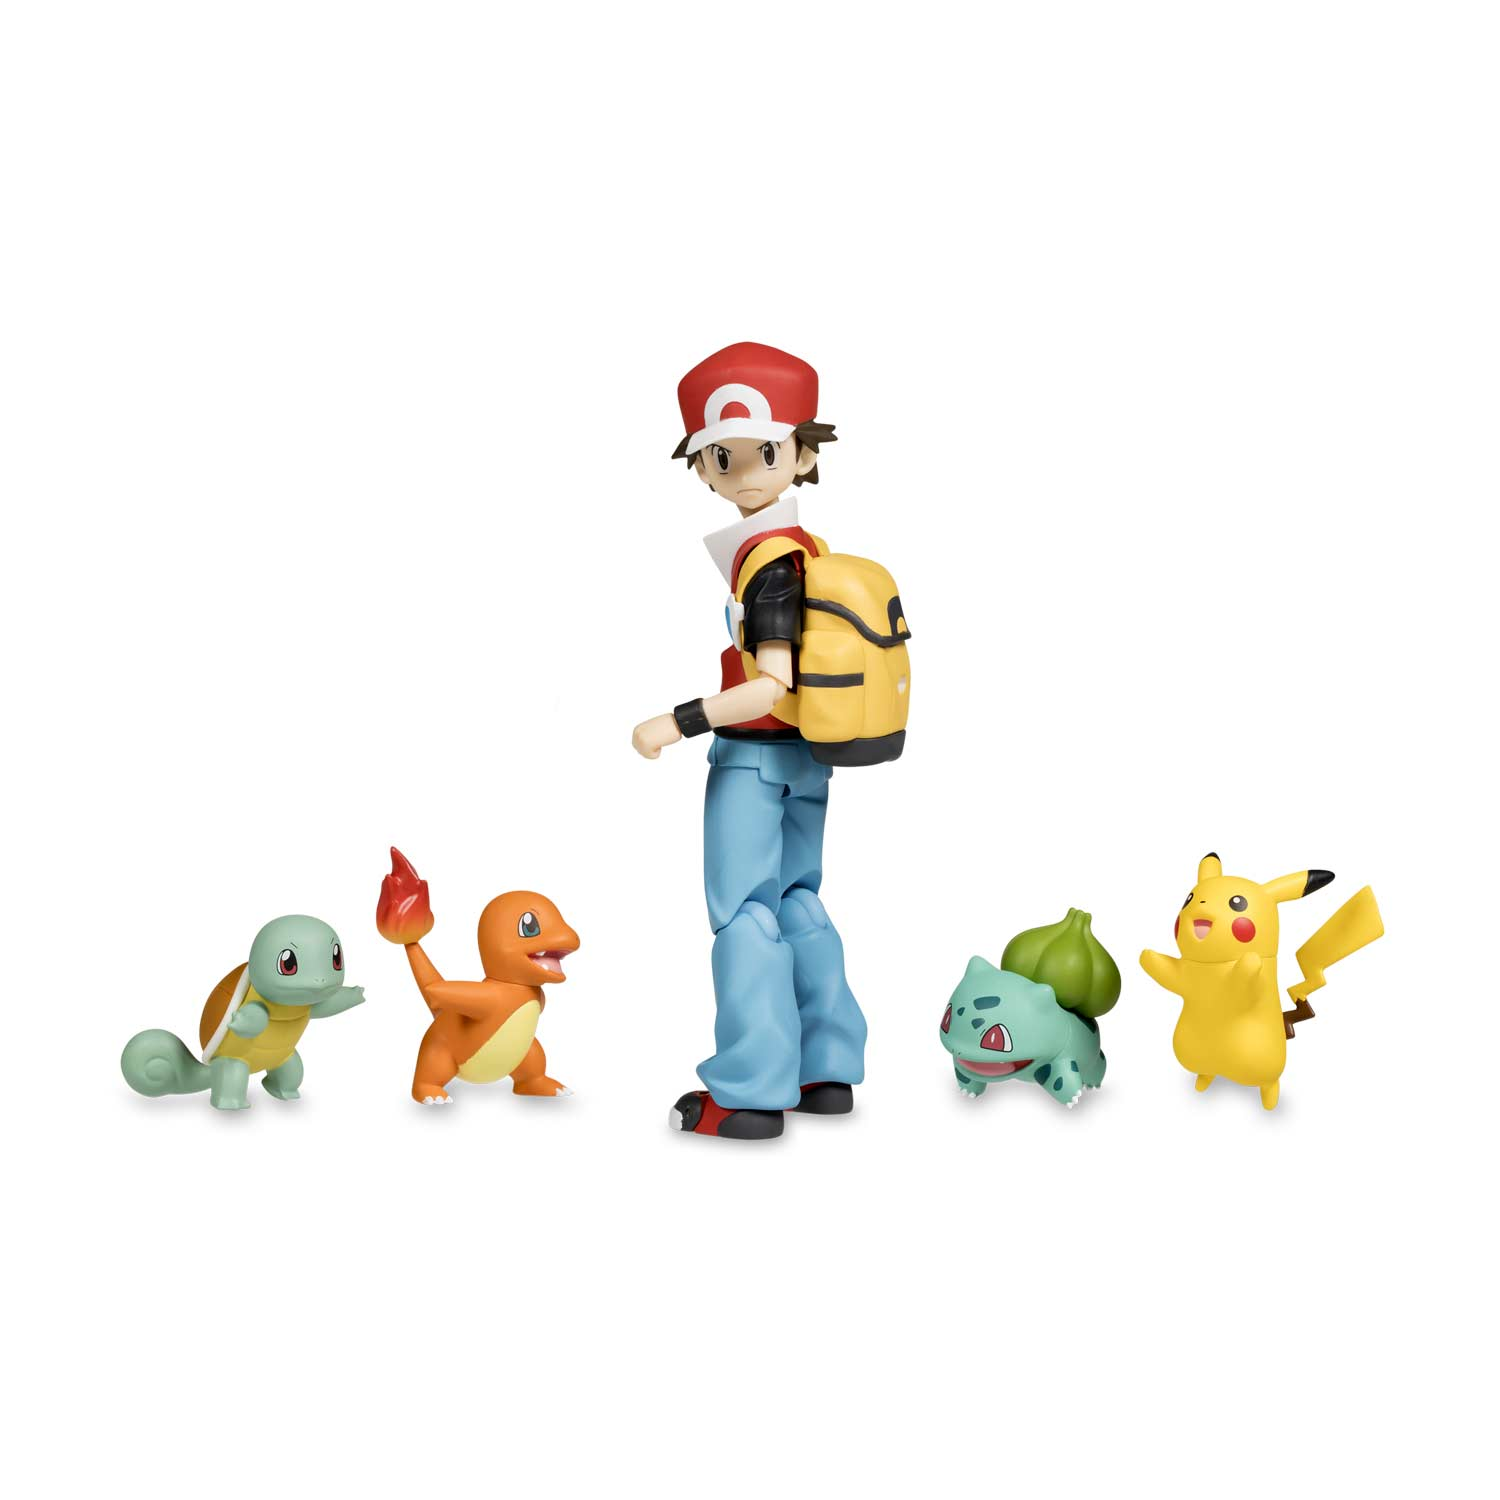 323ab3c6 Image for figma: Red Posable Figure with Pikachu, Bulbasaur, Charmander &  Squirtle from